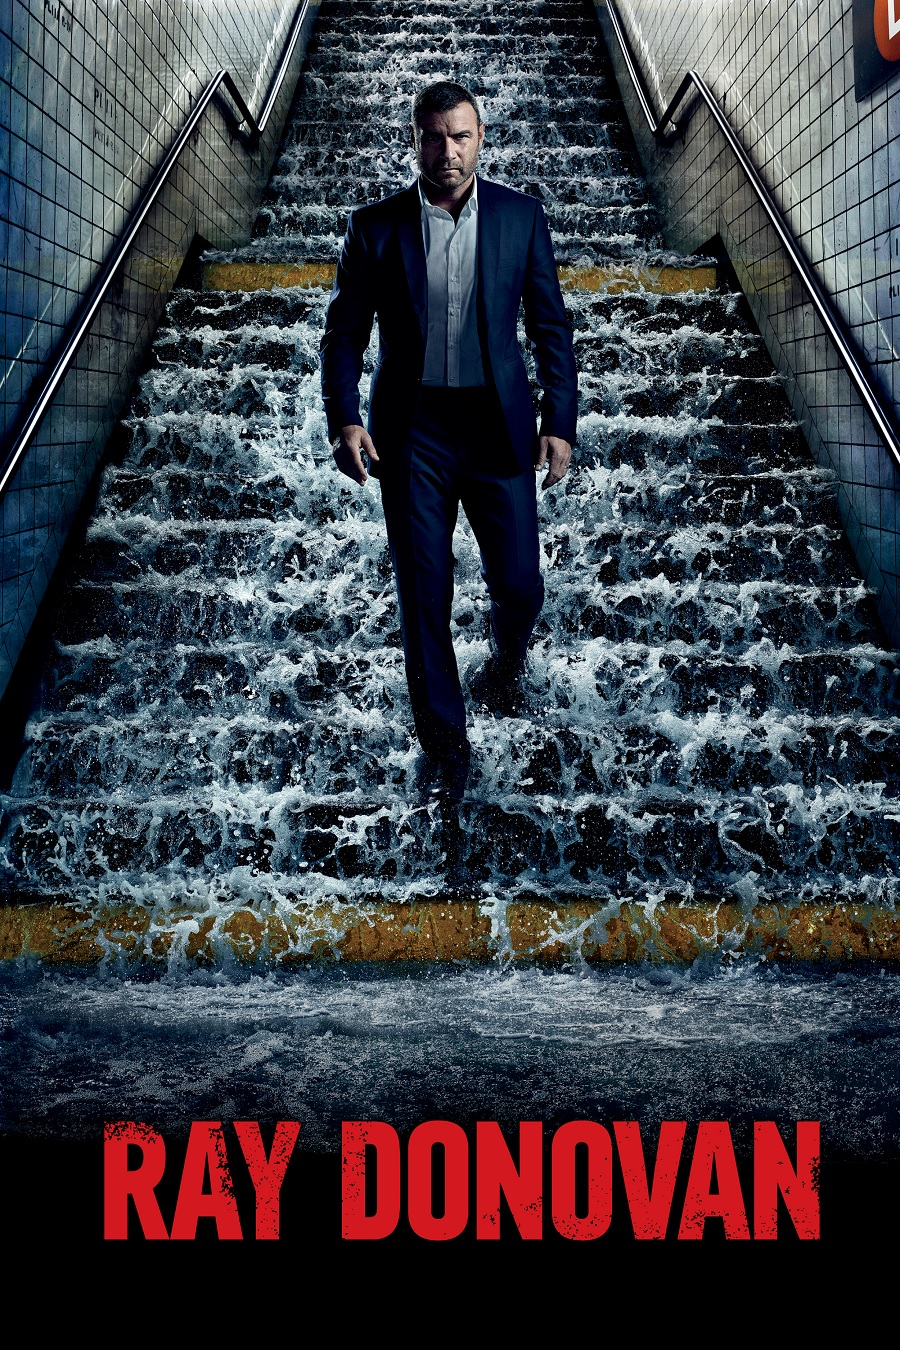 Discovery Channel Hd Wallpapers Sky Atlantic Sets Uk Premiere Date For Ray Donovan